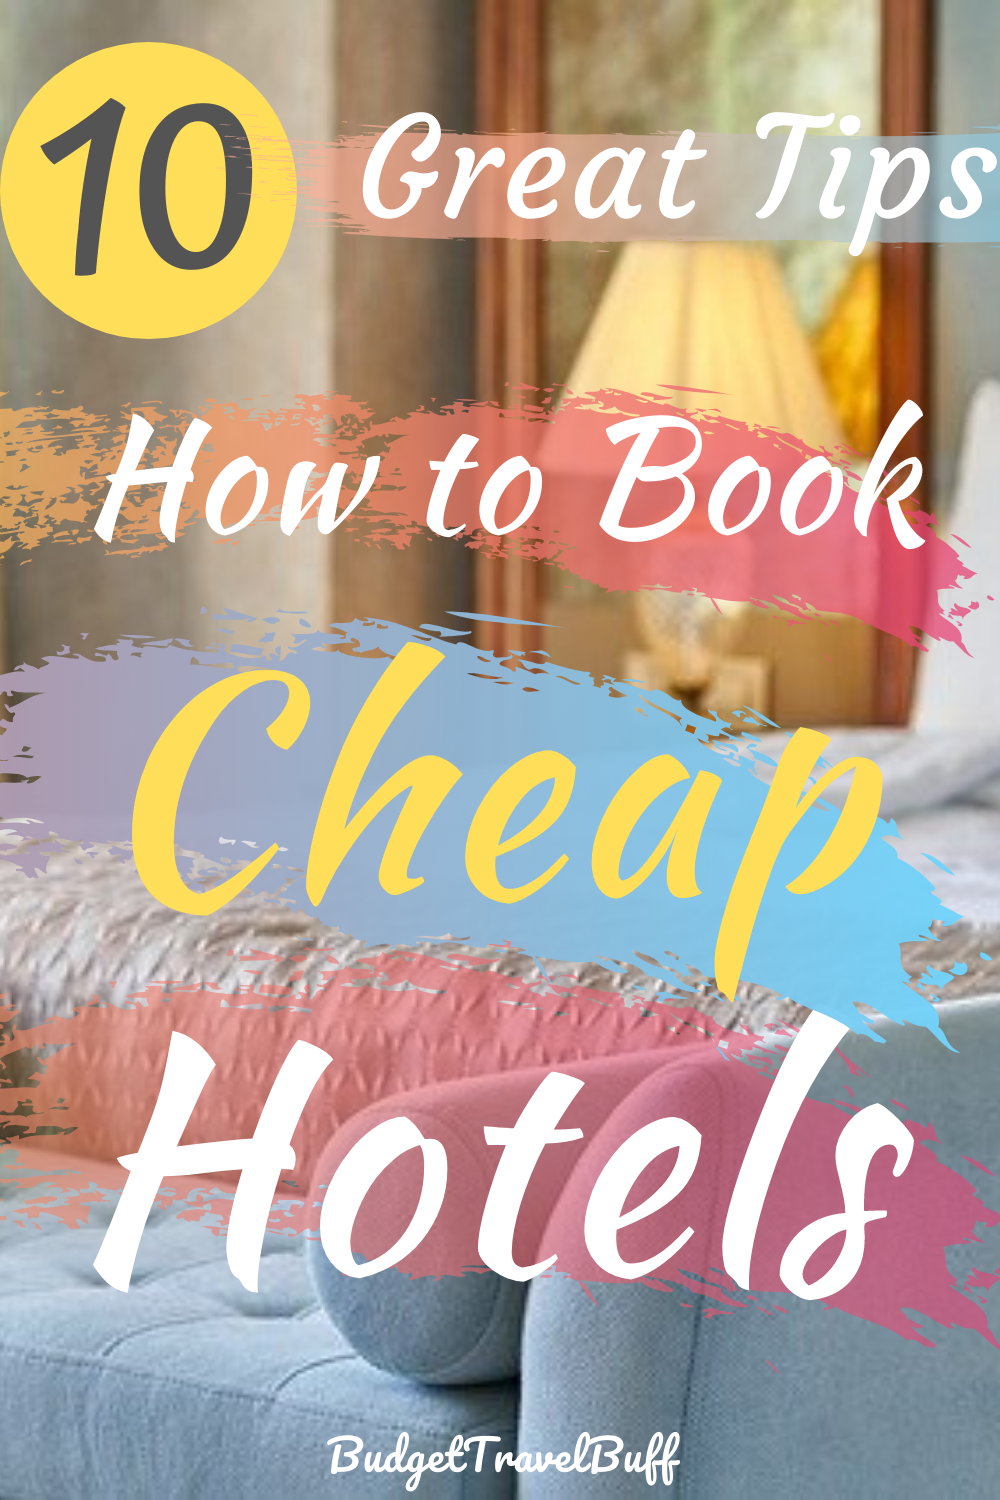 Budget travelers and backpackers often look for cheap hotels and hostels. Here is our secret hacks on how we find cheap hotels each time easily. Apply these hotel booking tricks to get cheap hotel deals. Bonus: Best and Cheapest hotel booking sites and how to use Hotel booking sites efficiently. #cheaphotels #budgethotels #cheaphotelbooking #hotelbookingsites